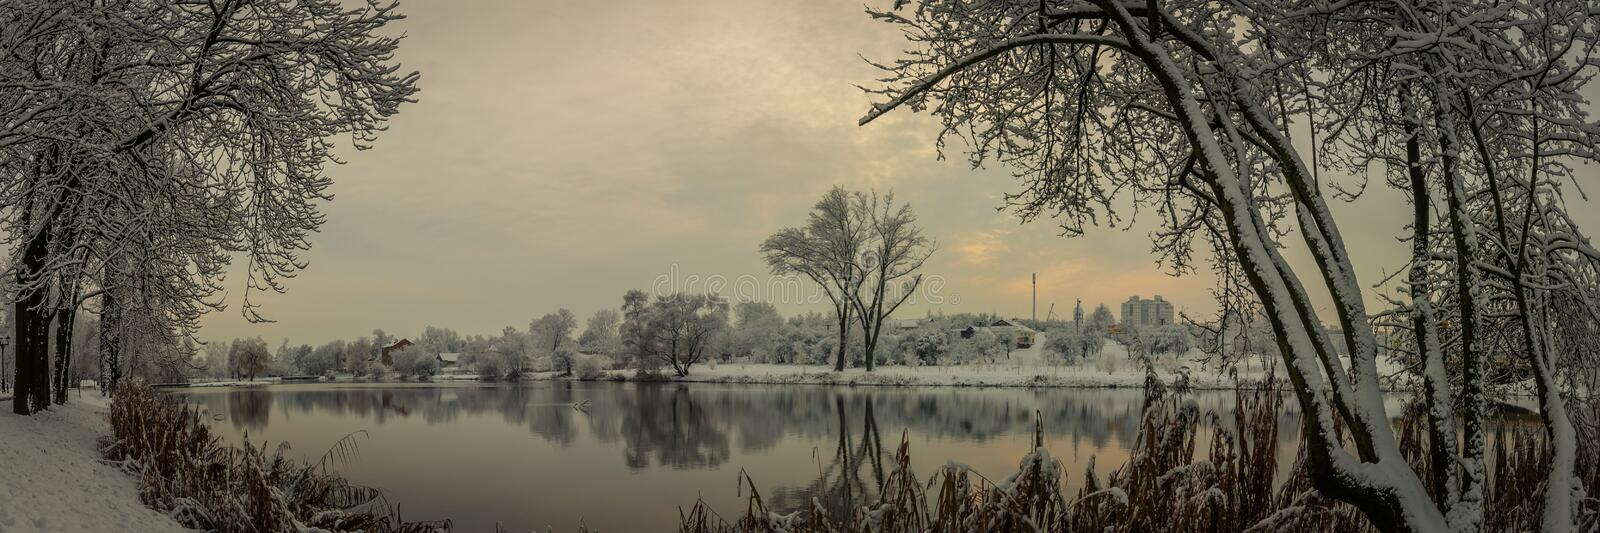 beautiful winter landscape. panoramic view from the river coast, lakes, pond in a snow-covered city park through coastal trees and stock photos